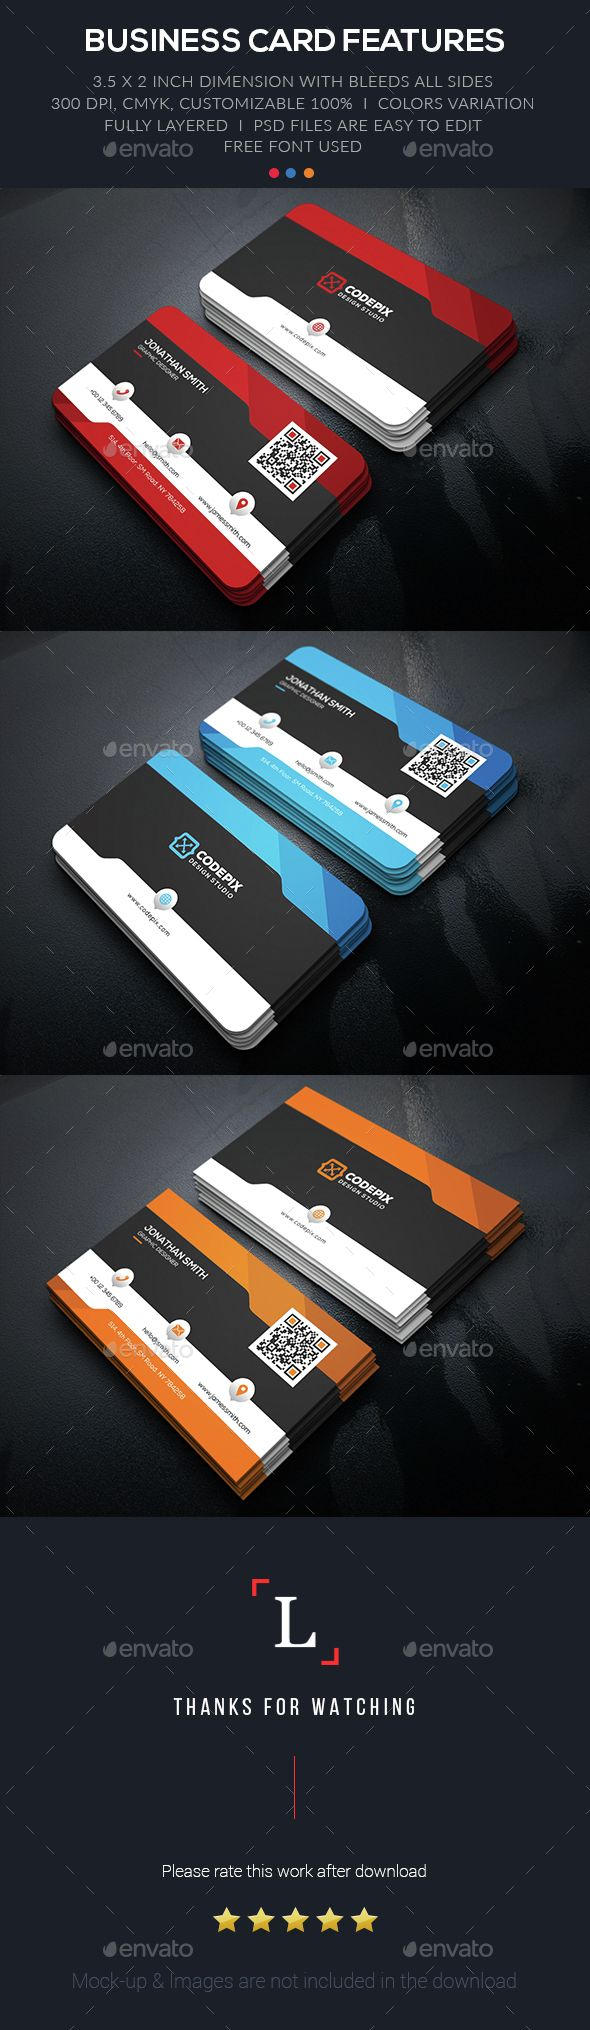 Corporate Business Card — Photoshop PSD #corporate #web • Available here → https://graphicriver.net/item/corporate-business-card/15300042?ref=pxcr